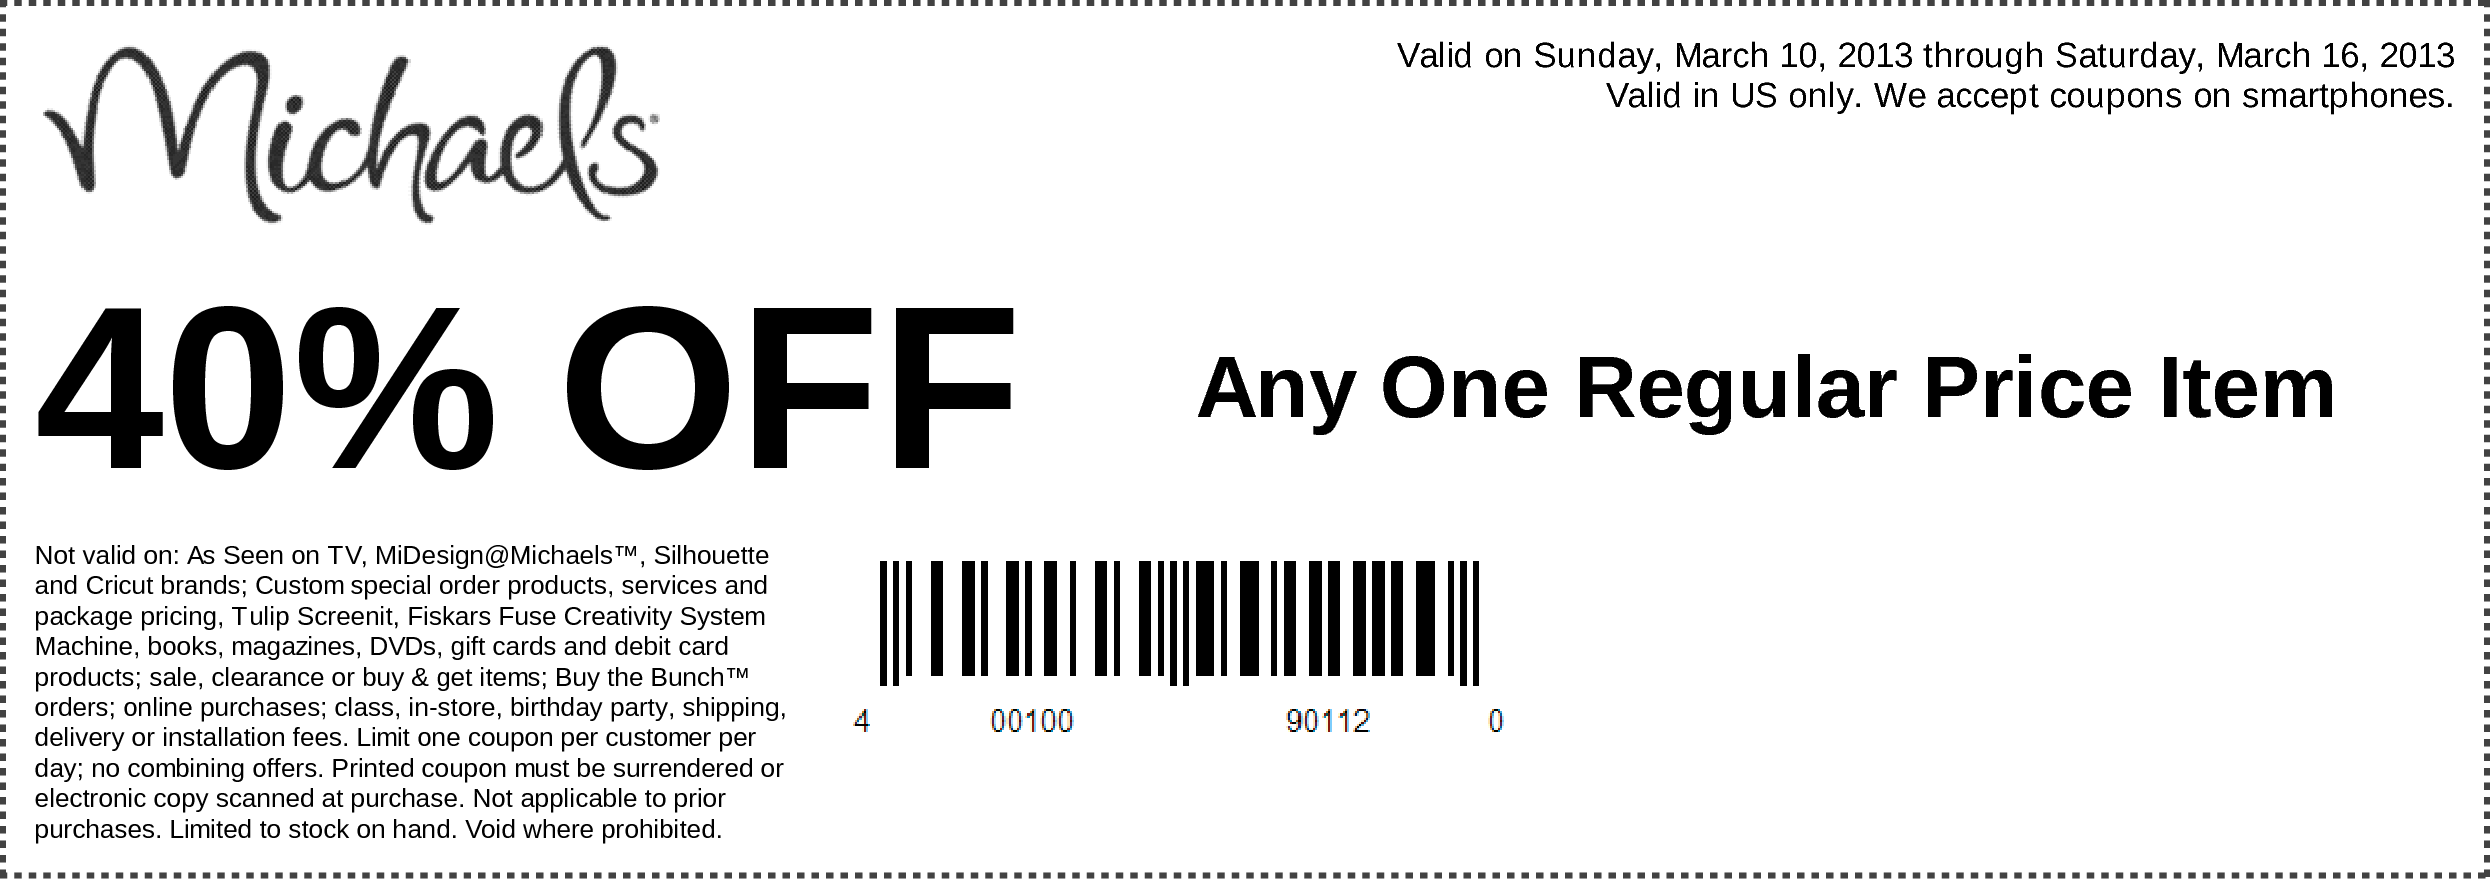 photo relating to Dress Barn Printable Coupon titled Retail Coupon codes For 3/15/13 Weekend For Retailers Which includes Dressbarn